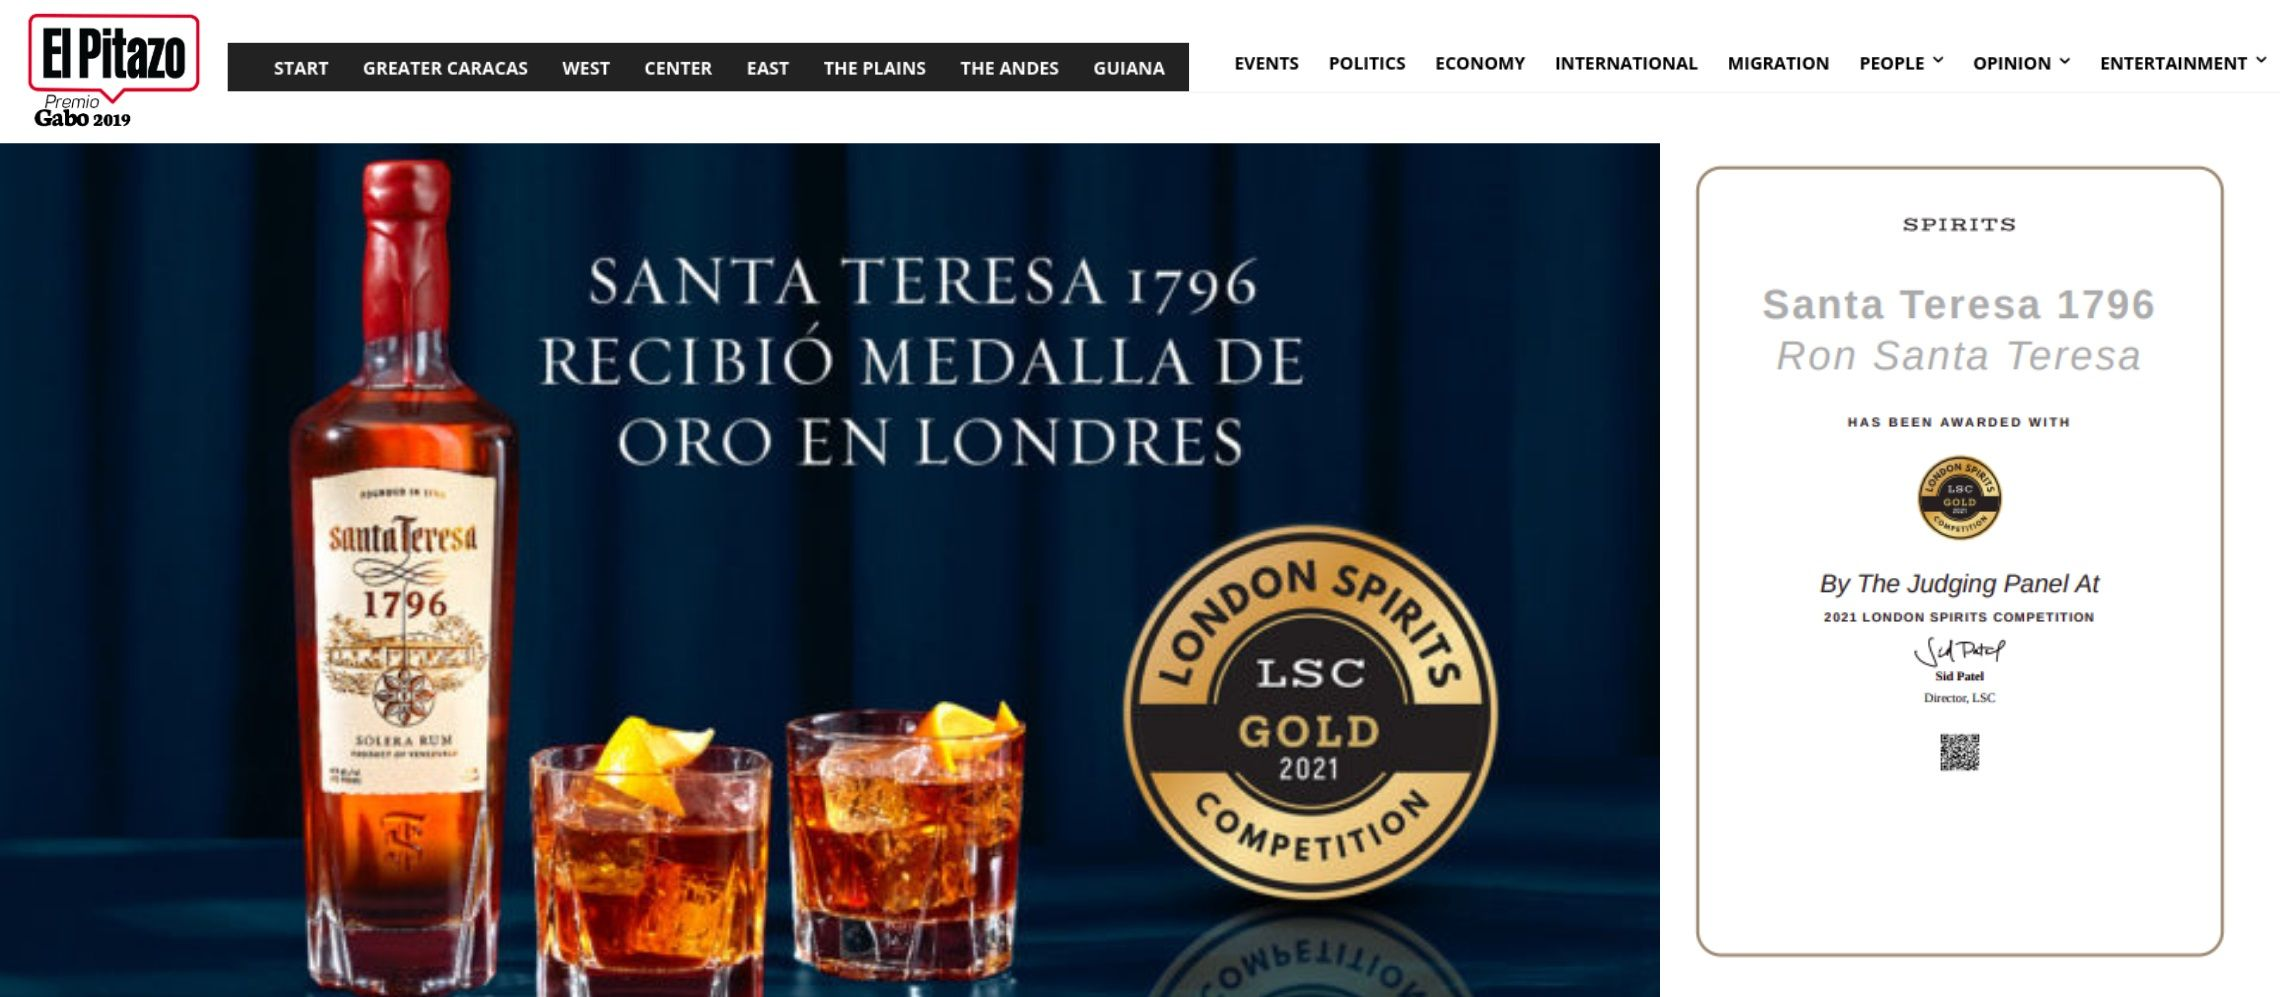 Photo for: Saint Teresa 1796 Received A Gold Medal At The London Spirits Competition